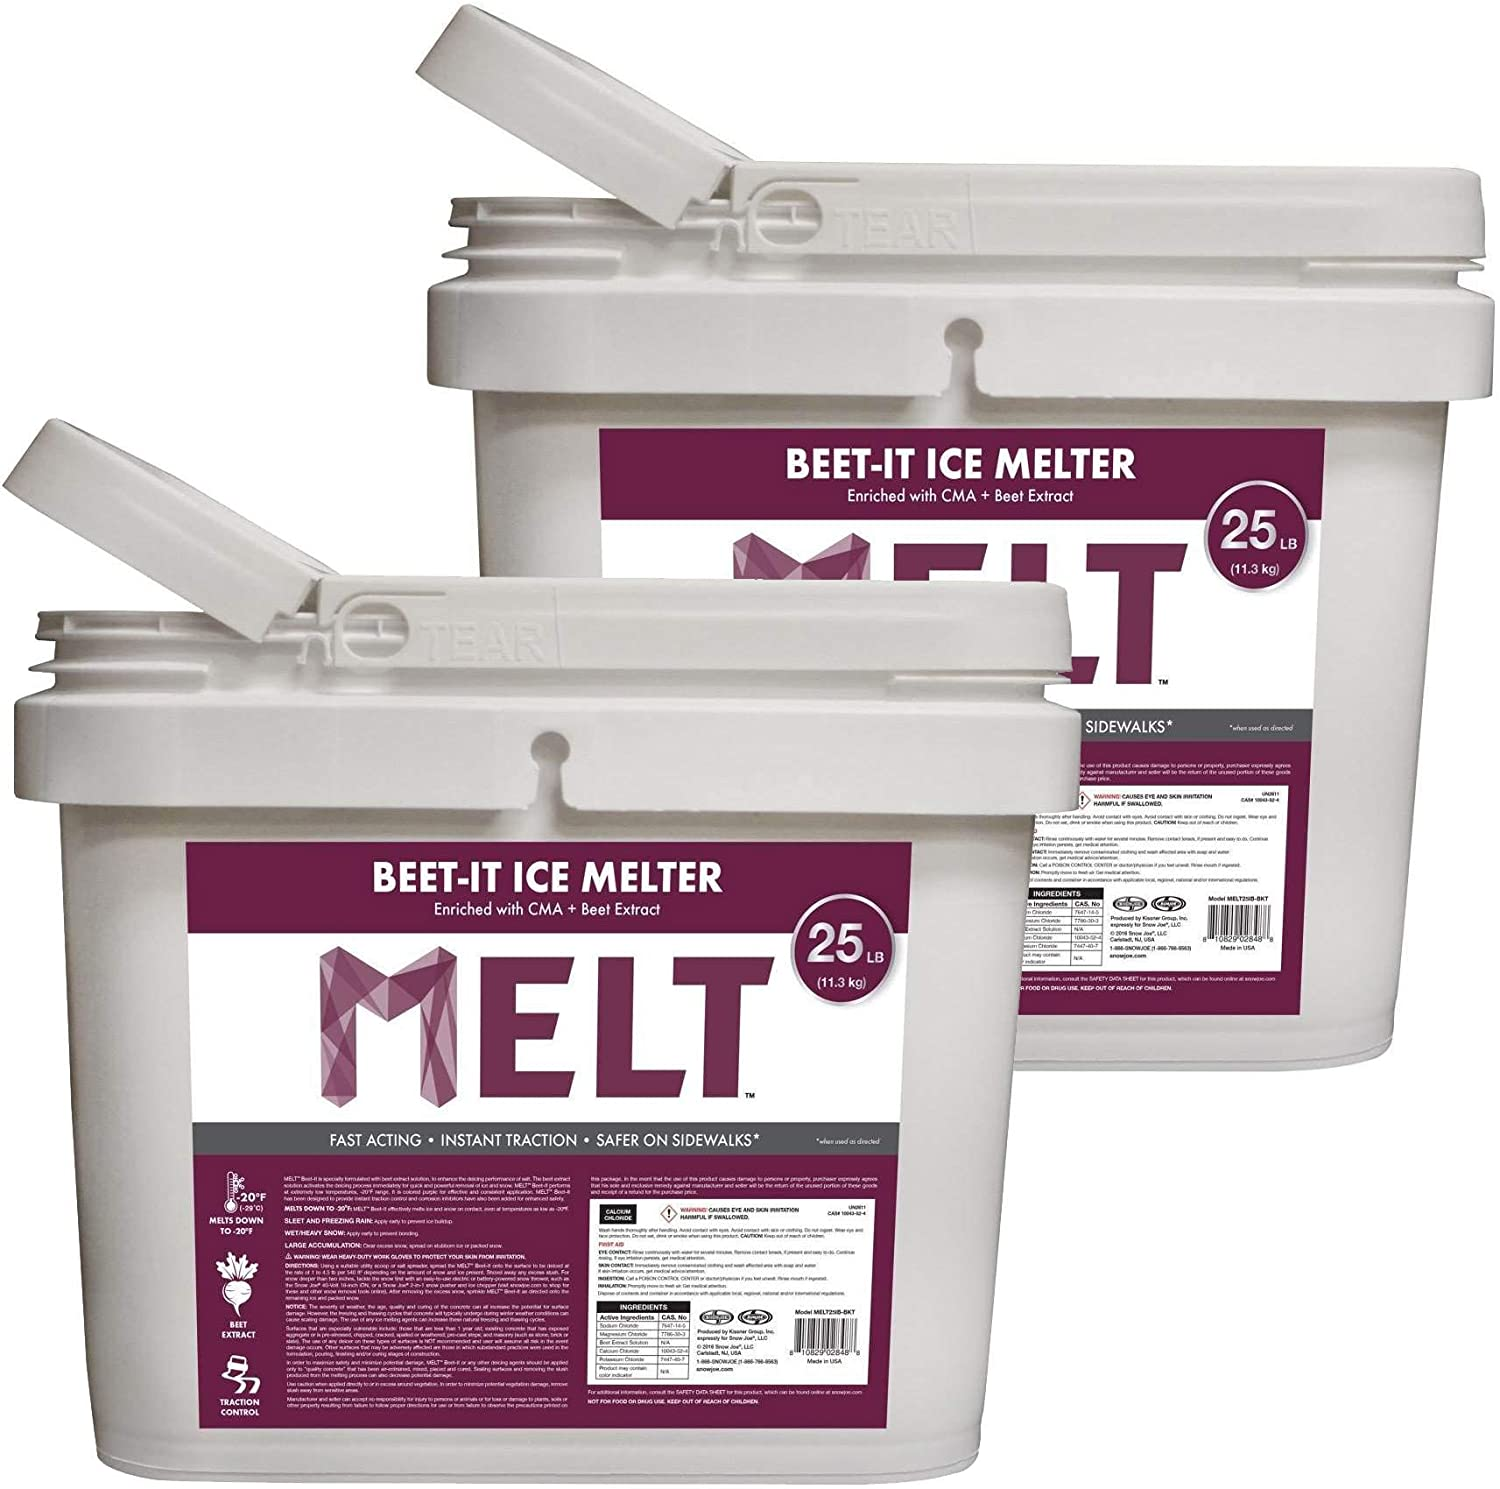 Snow Joe Beet Max 70% OFF It and Ice Extract 25 Melter Max 62% OFF Lbs CMA w